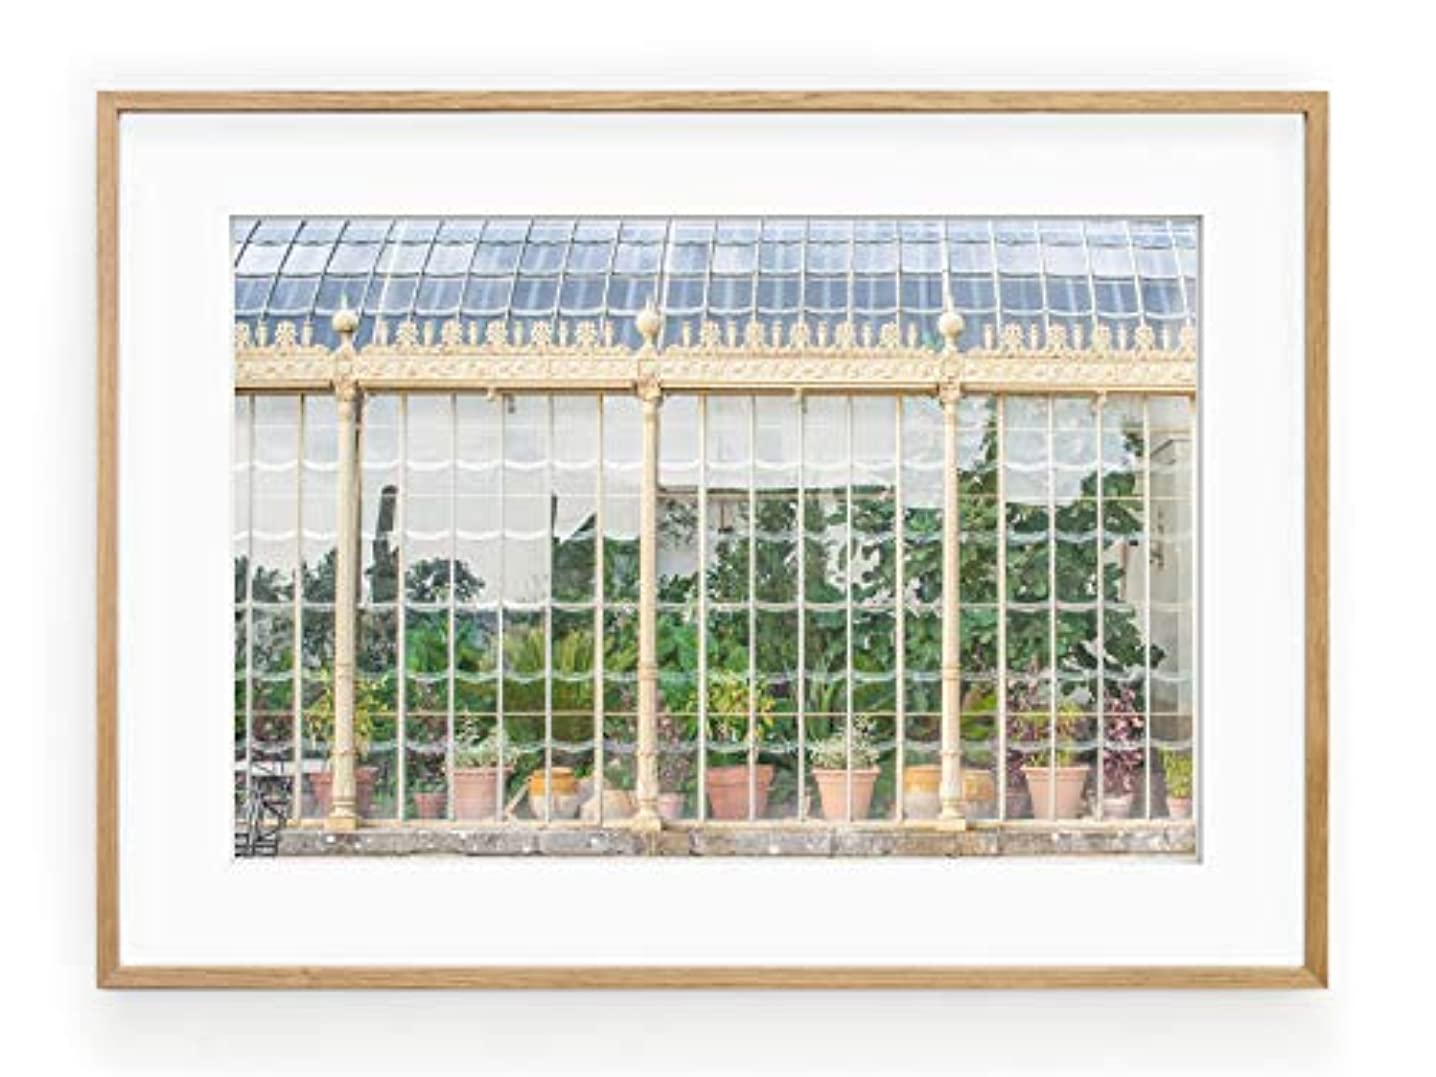 Green House Black Satin Aluminium Frame with Mount, Multicolored, 40x50